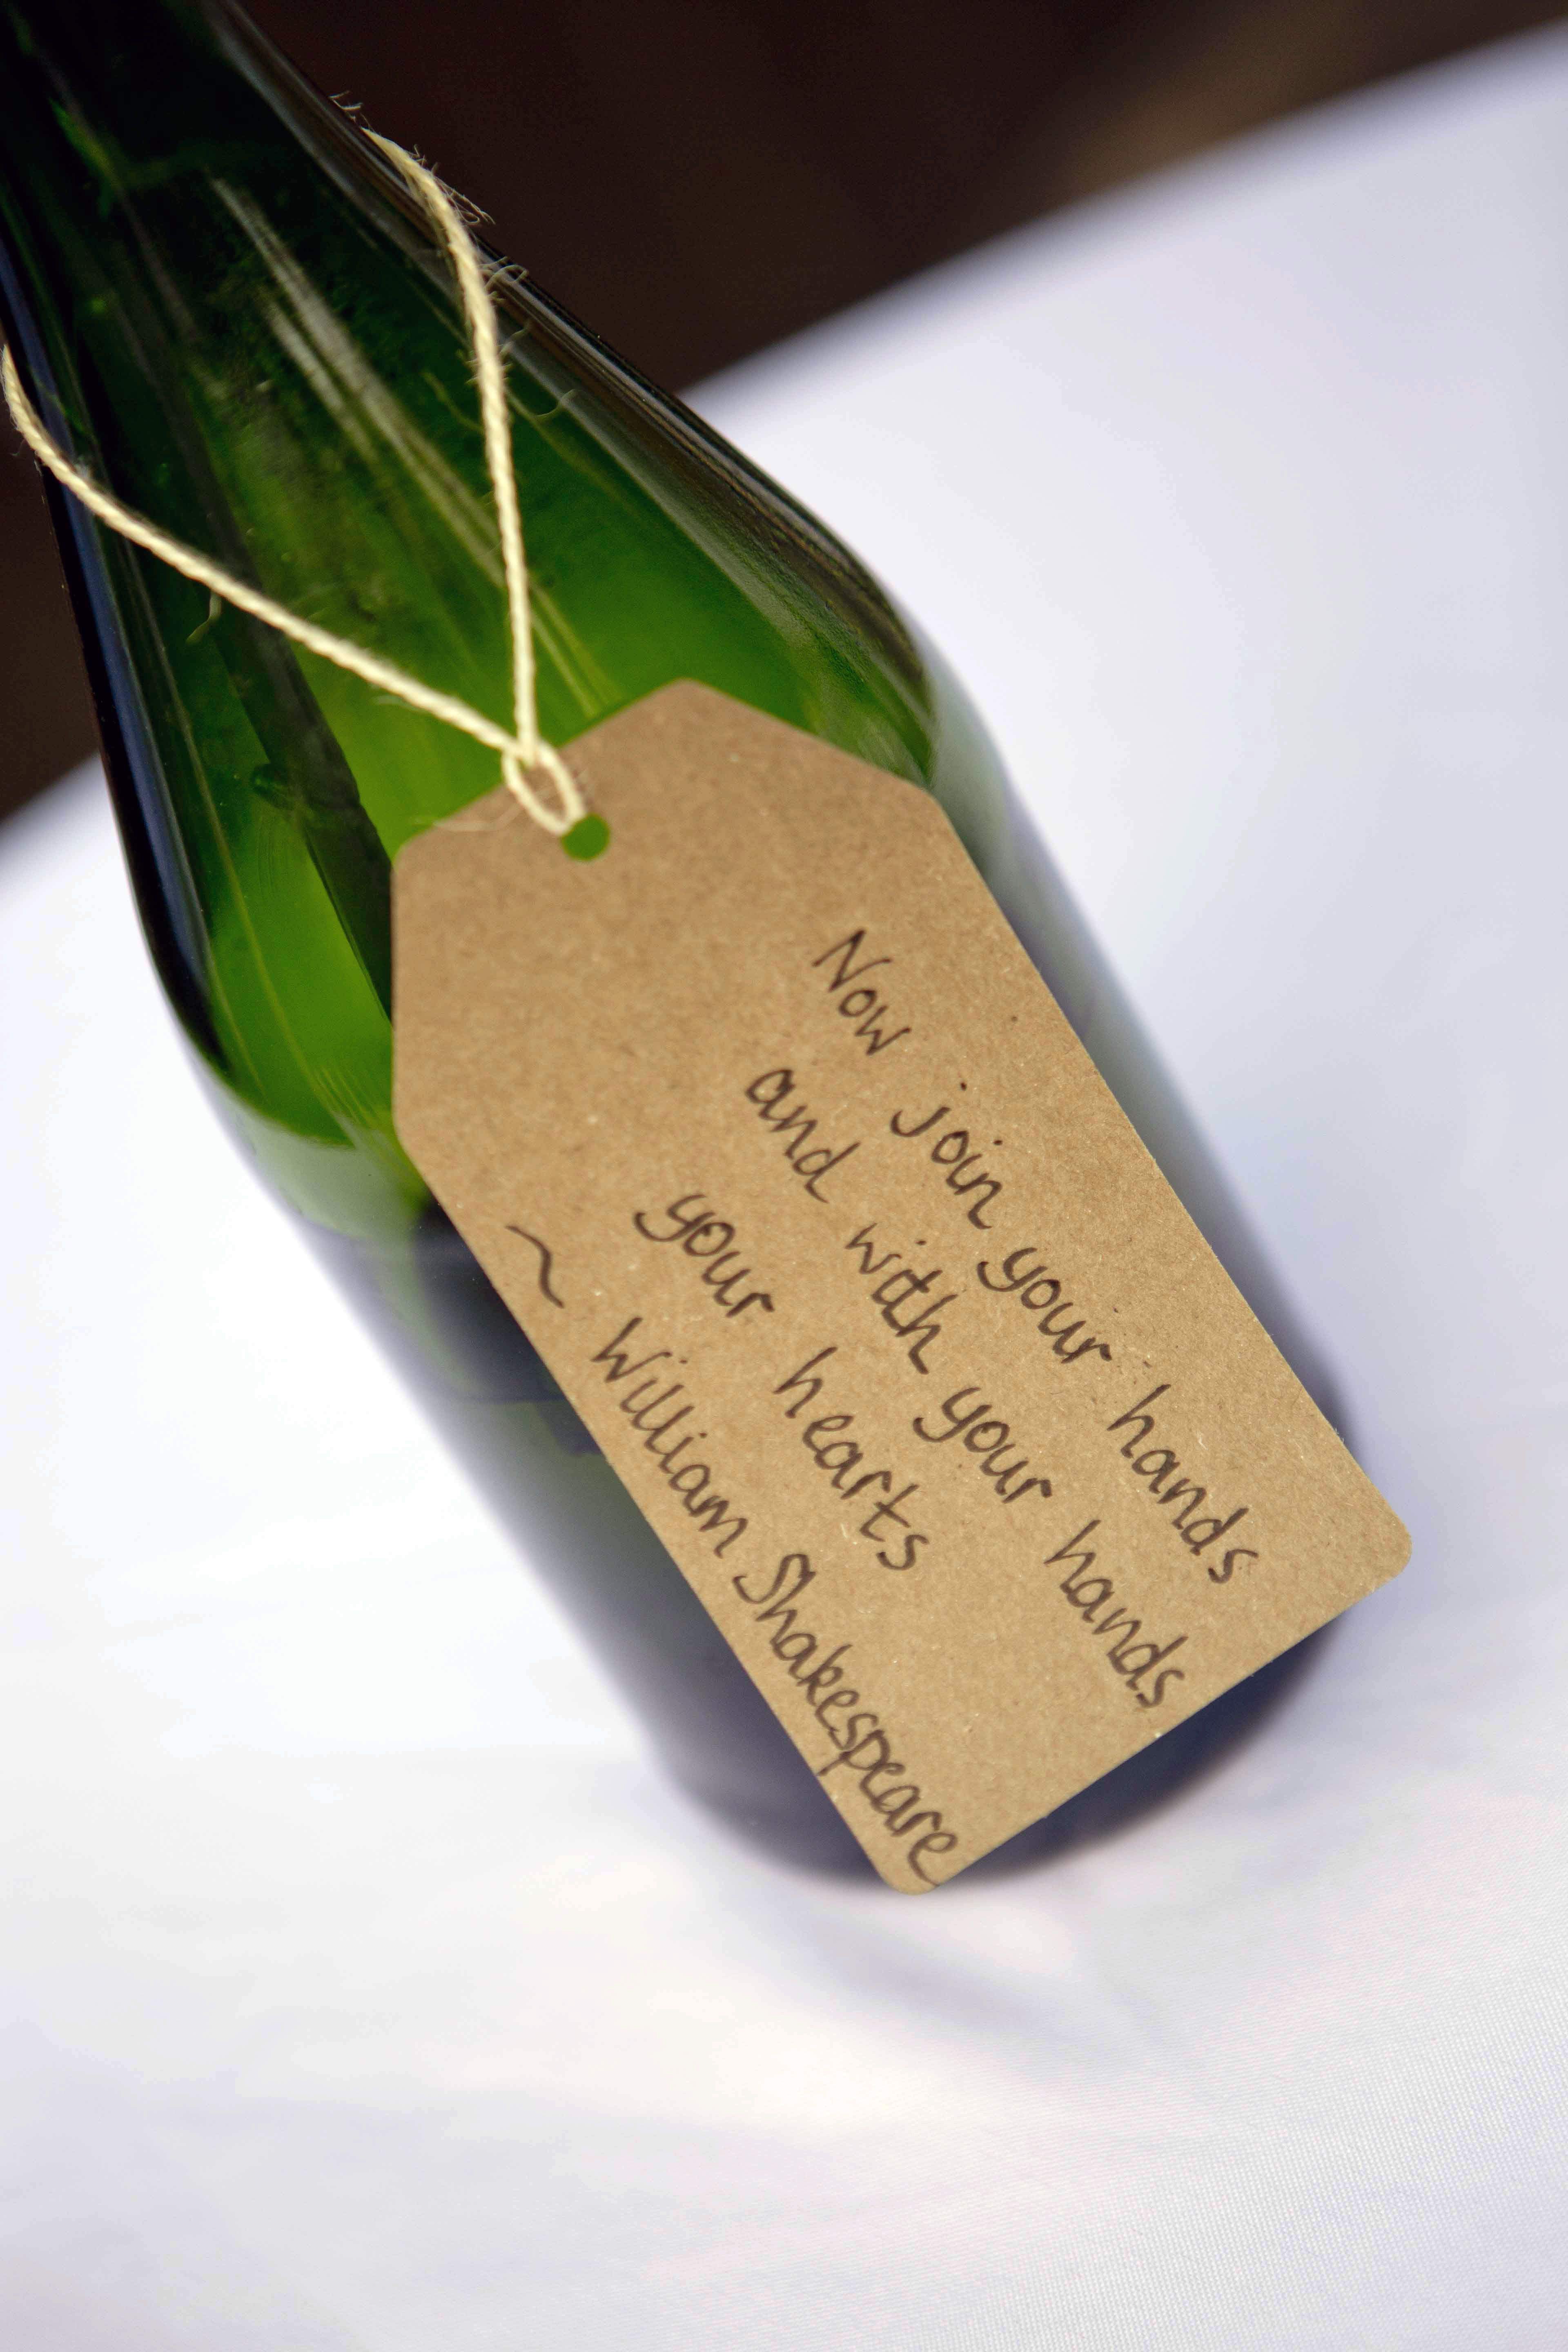 Centerpiece wine bottle quotes our wedding pinterest centerpiece wine bottle quotes junglespirit Gallery